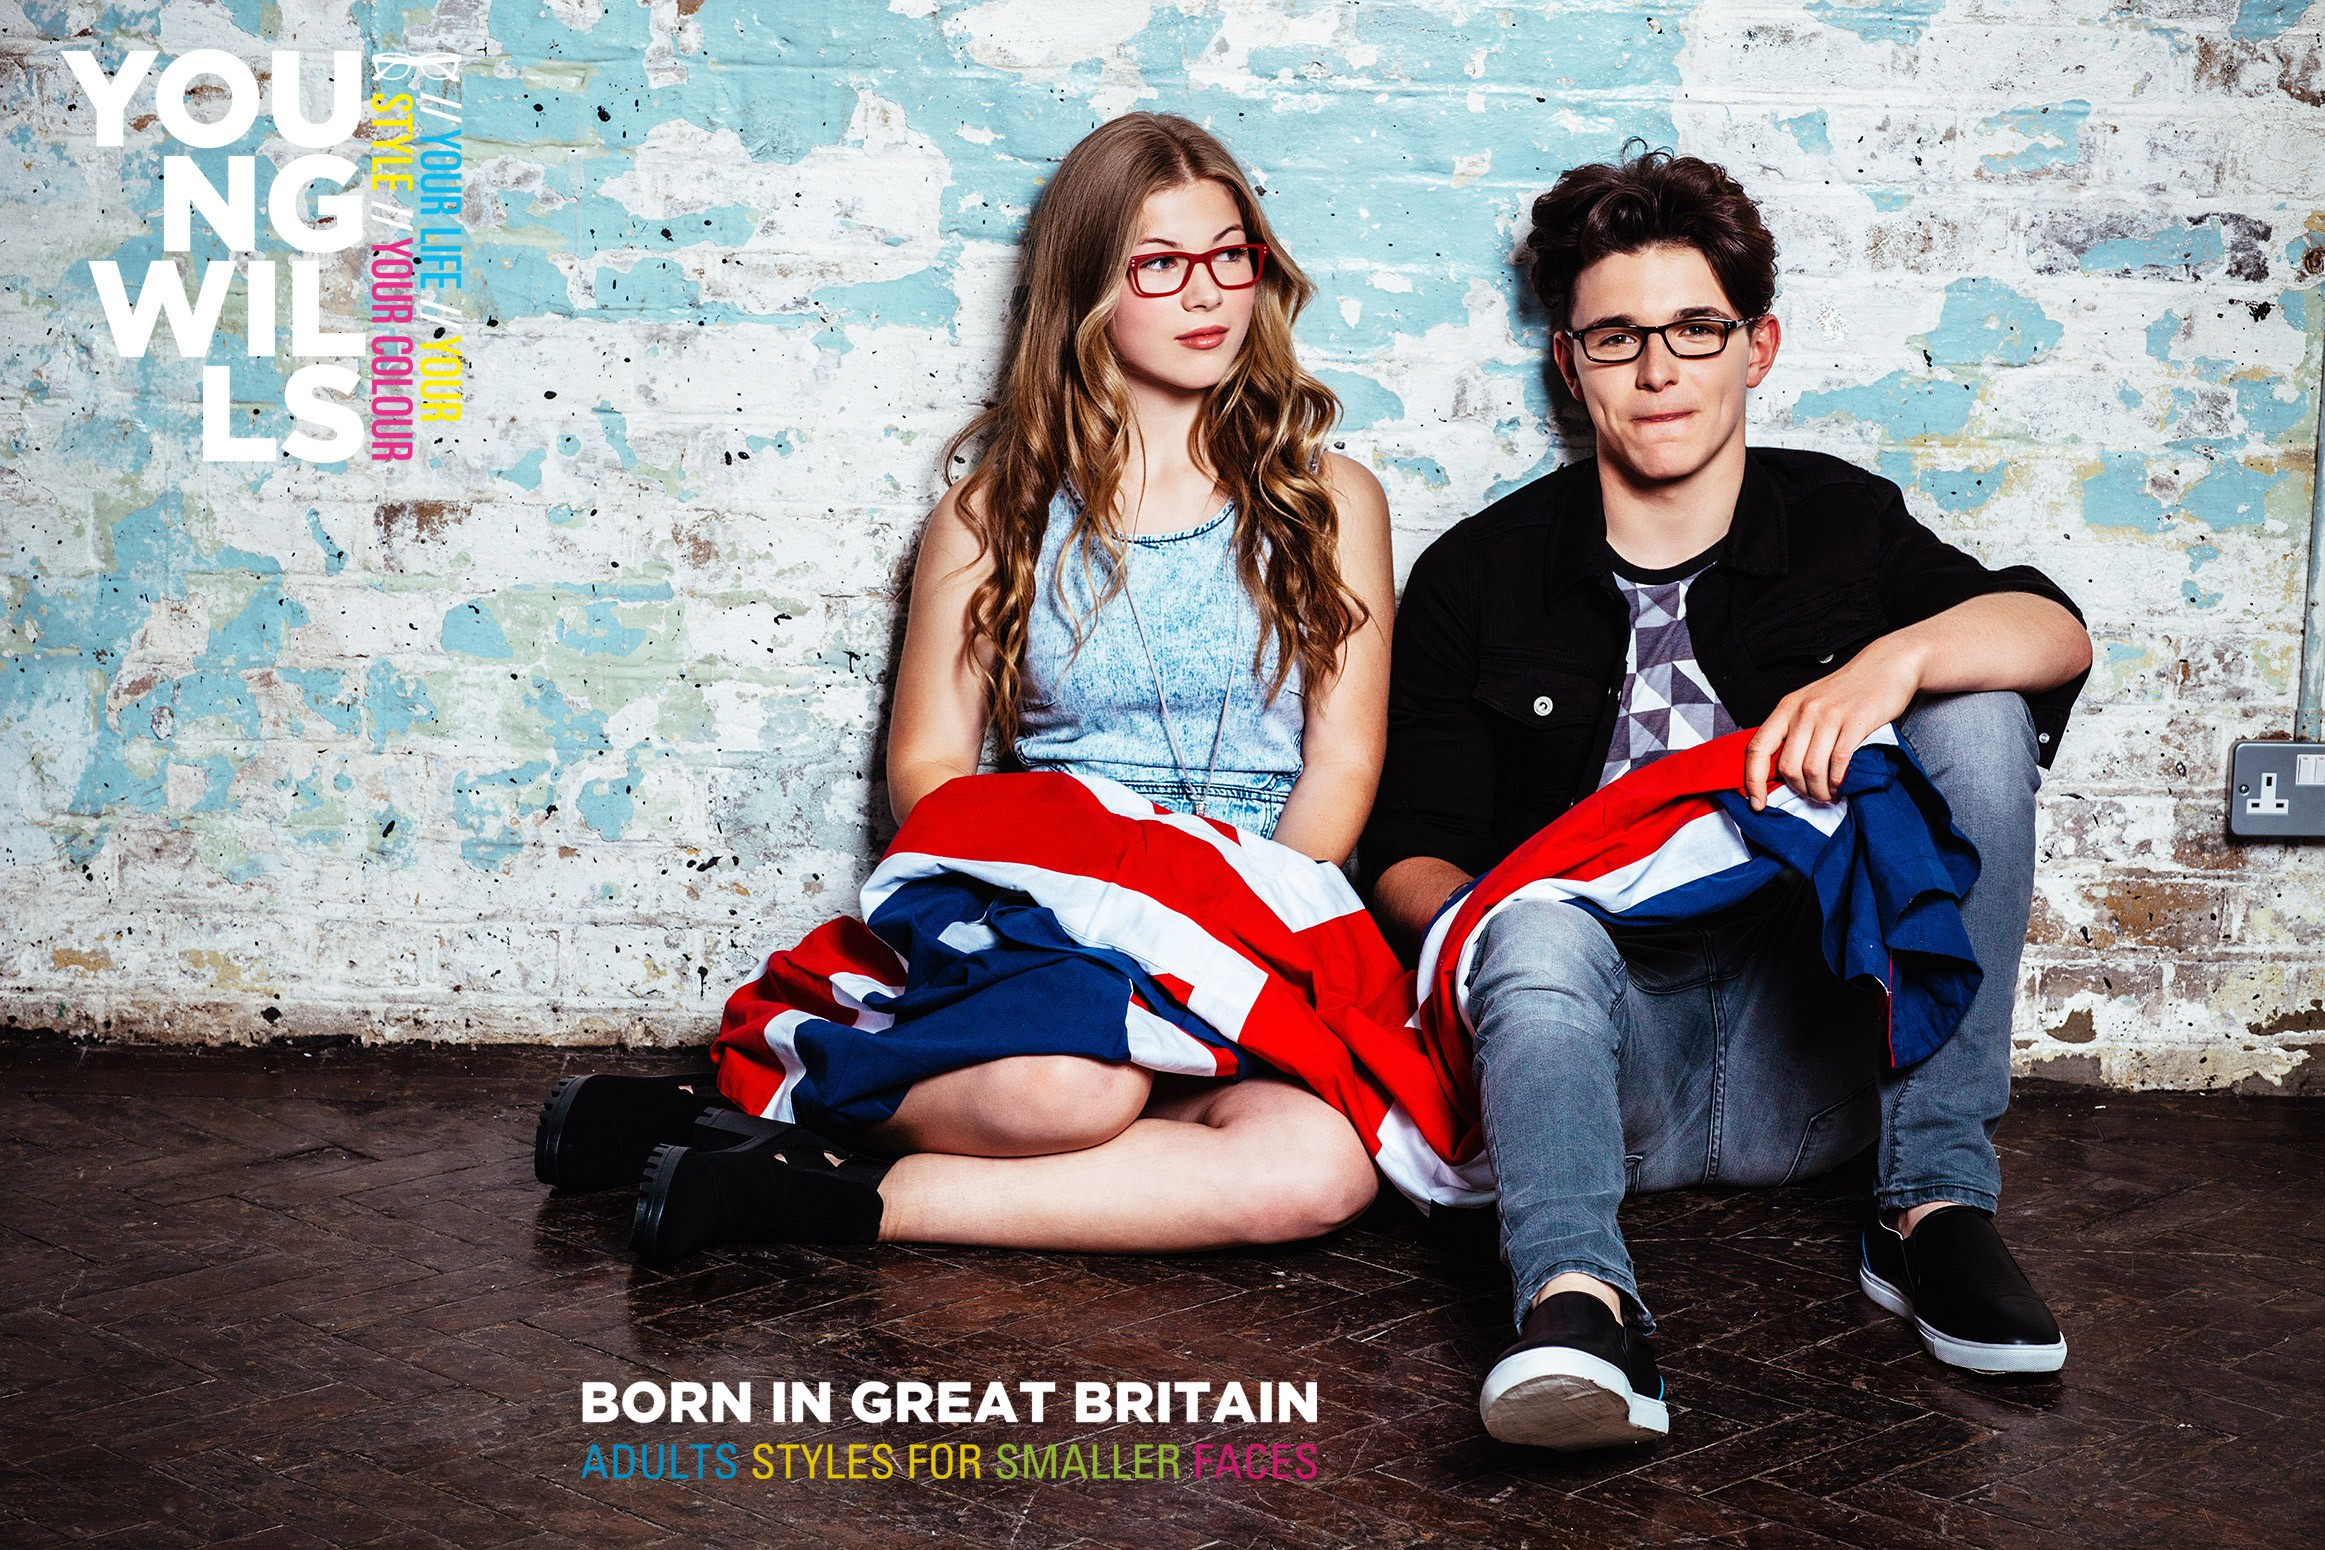 william-morris-glasses-campaign-eyewear-london-kids-colour-children-photography-ruth-rose-2.jpg